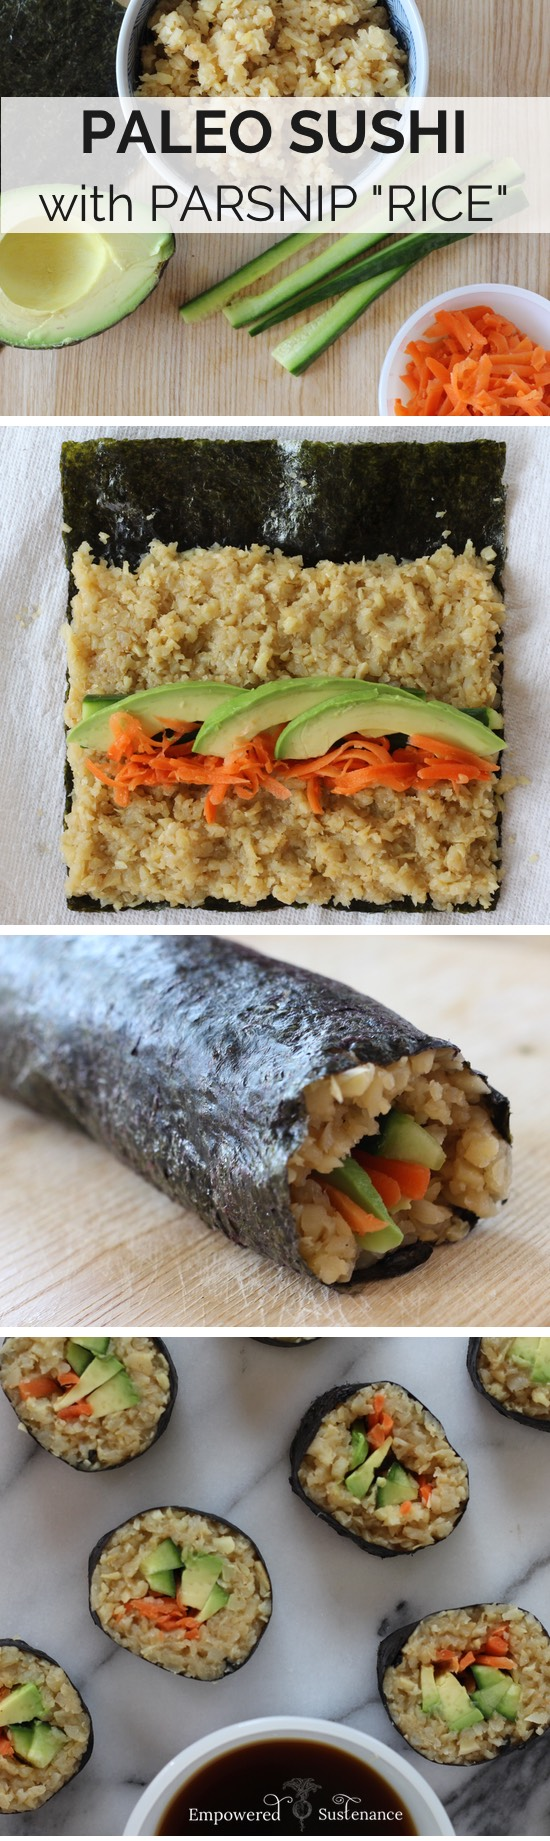 paleo sushi, made with parsnip rice